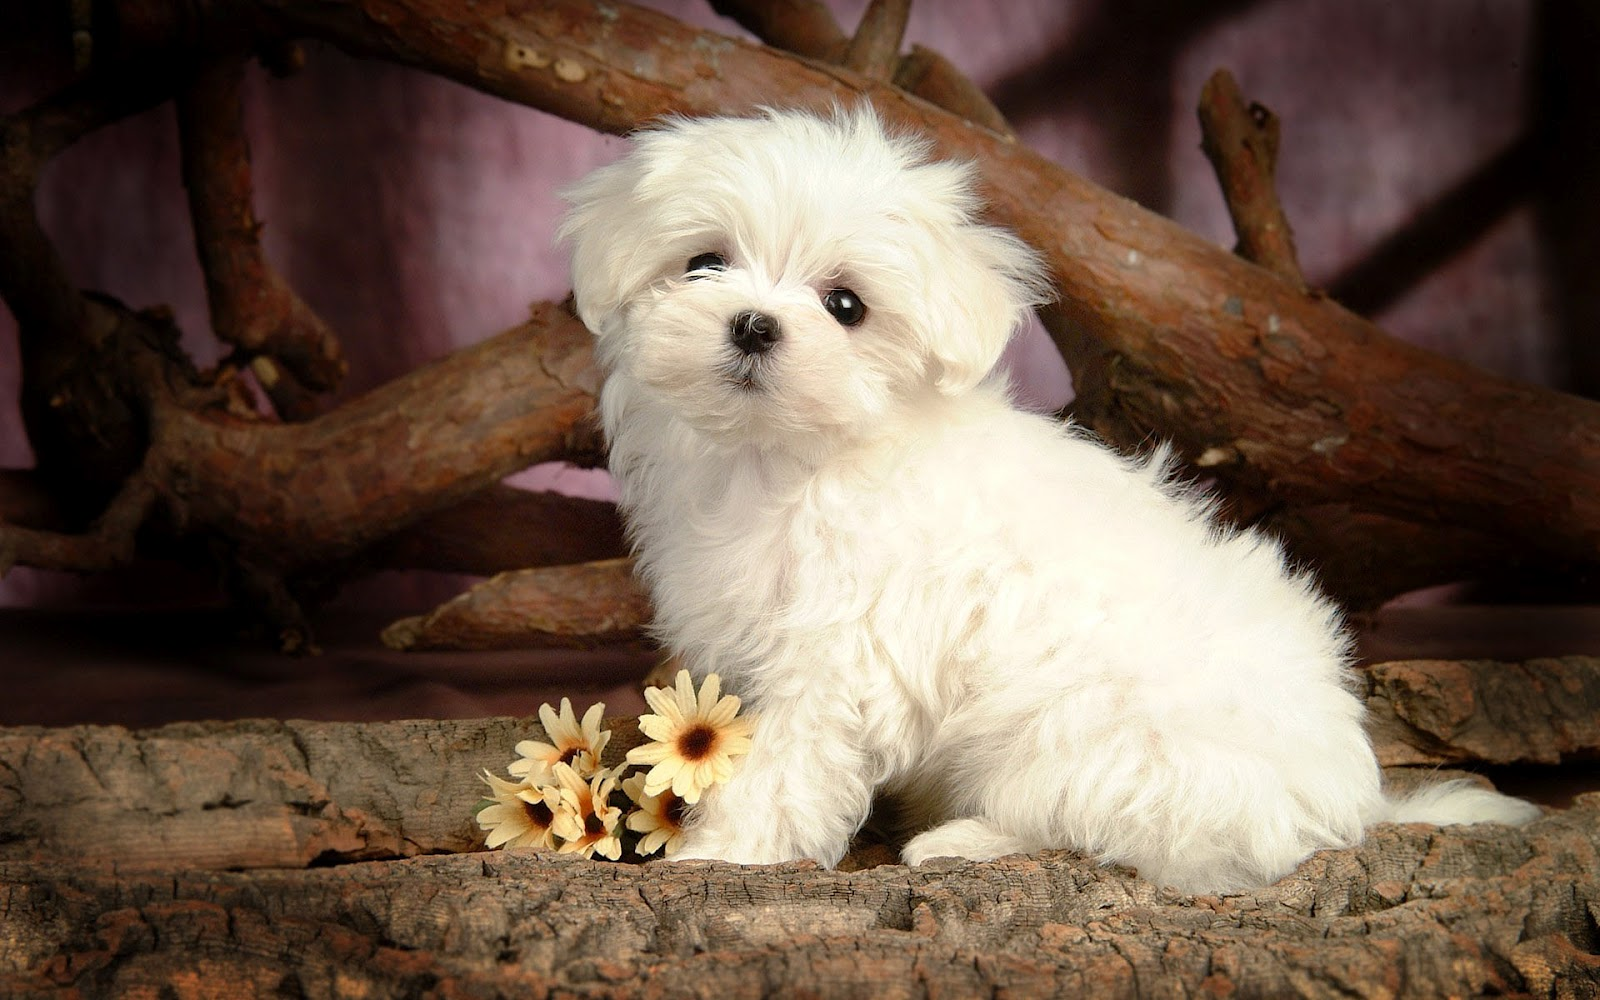 http://1.bp.blogspot.com/-uB28x36FFZQ/UCJVCMIThSI/AAAAAAAAAGY/KJp7sjZtJpI/s1600/hd-dog-wallpaper-with-a-cute-little-maltese-dog-background.jpg